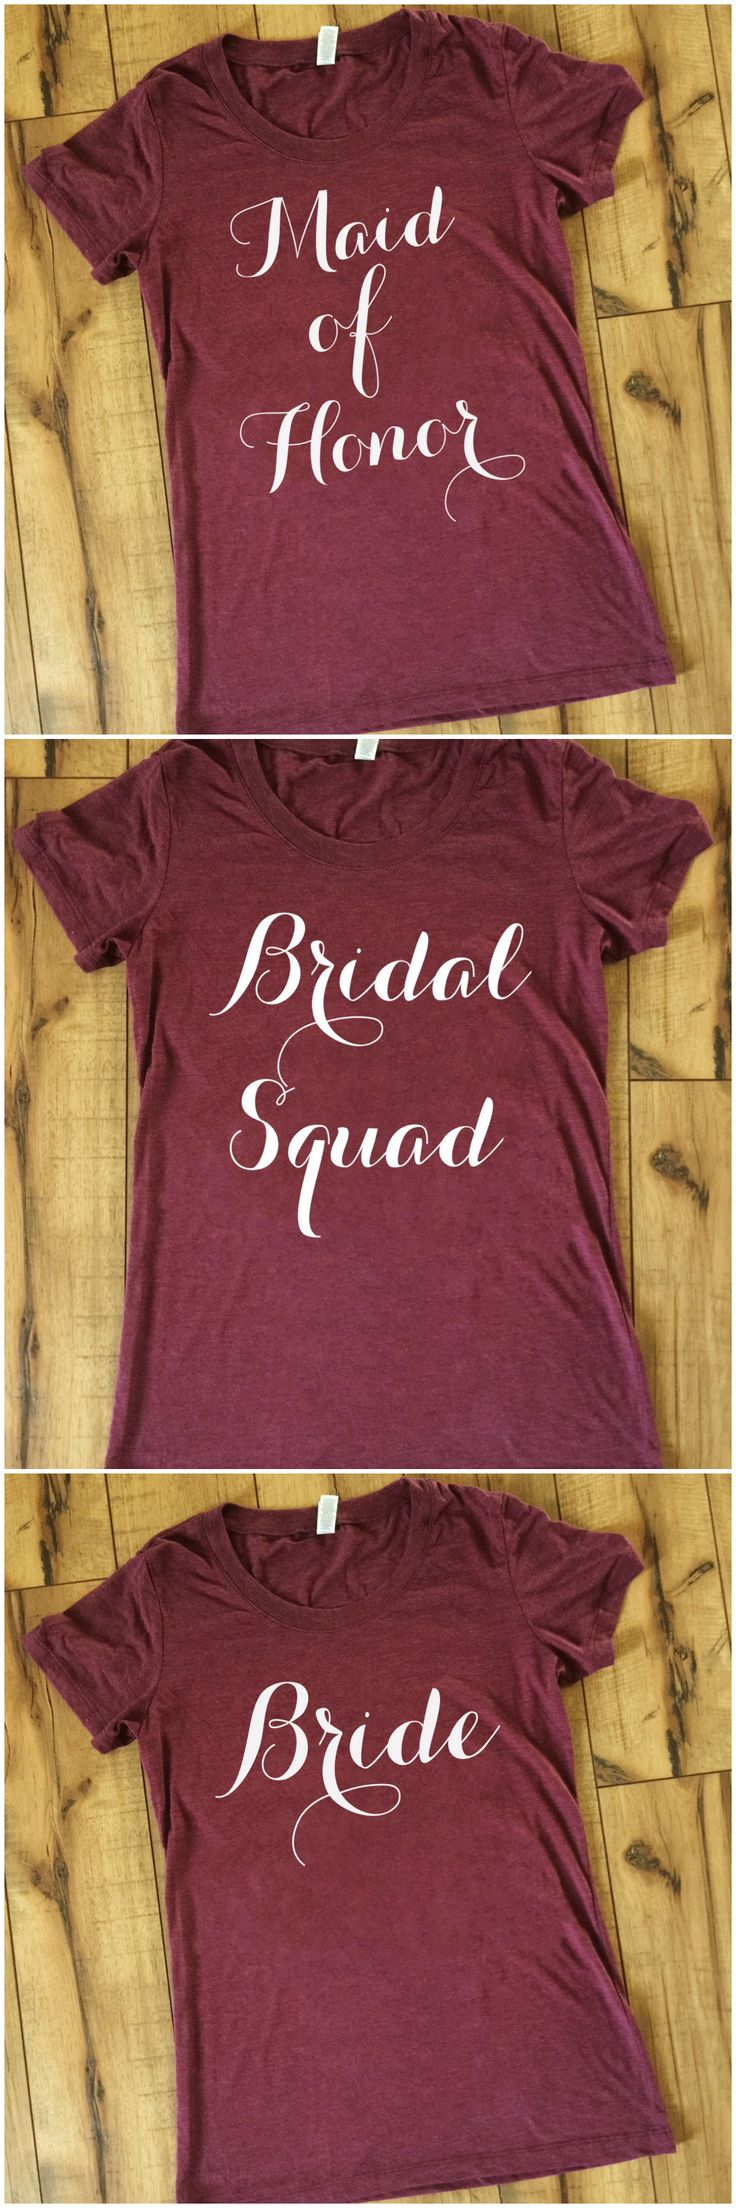 Bridal party squad t-shirts by Folklore Couture - these are perfect for bachelorette parties! #squadgoals